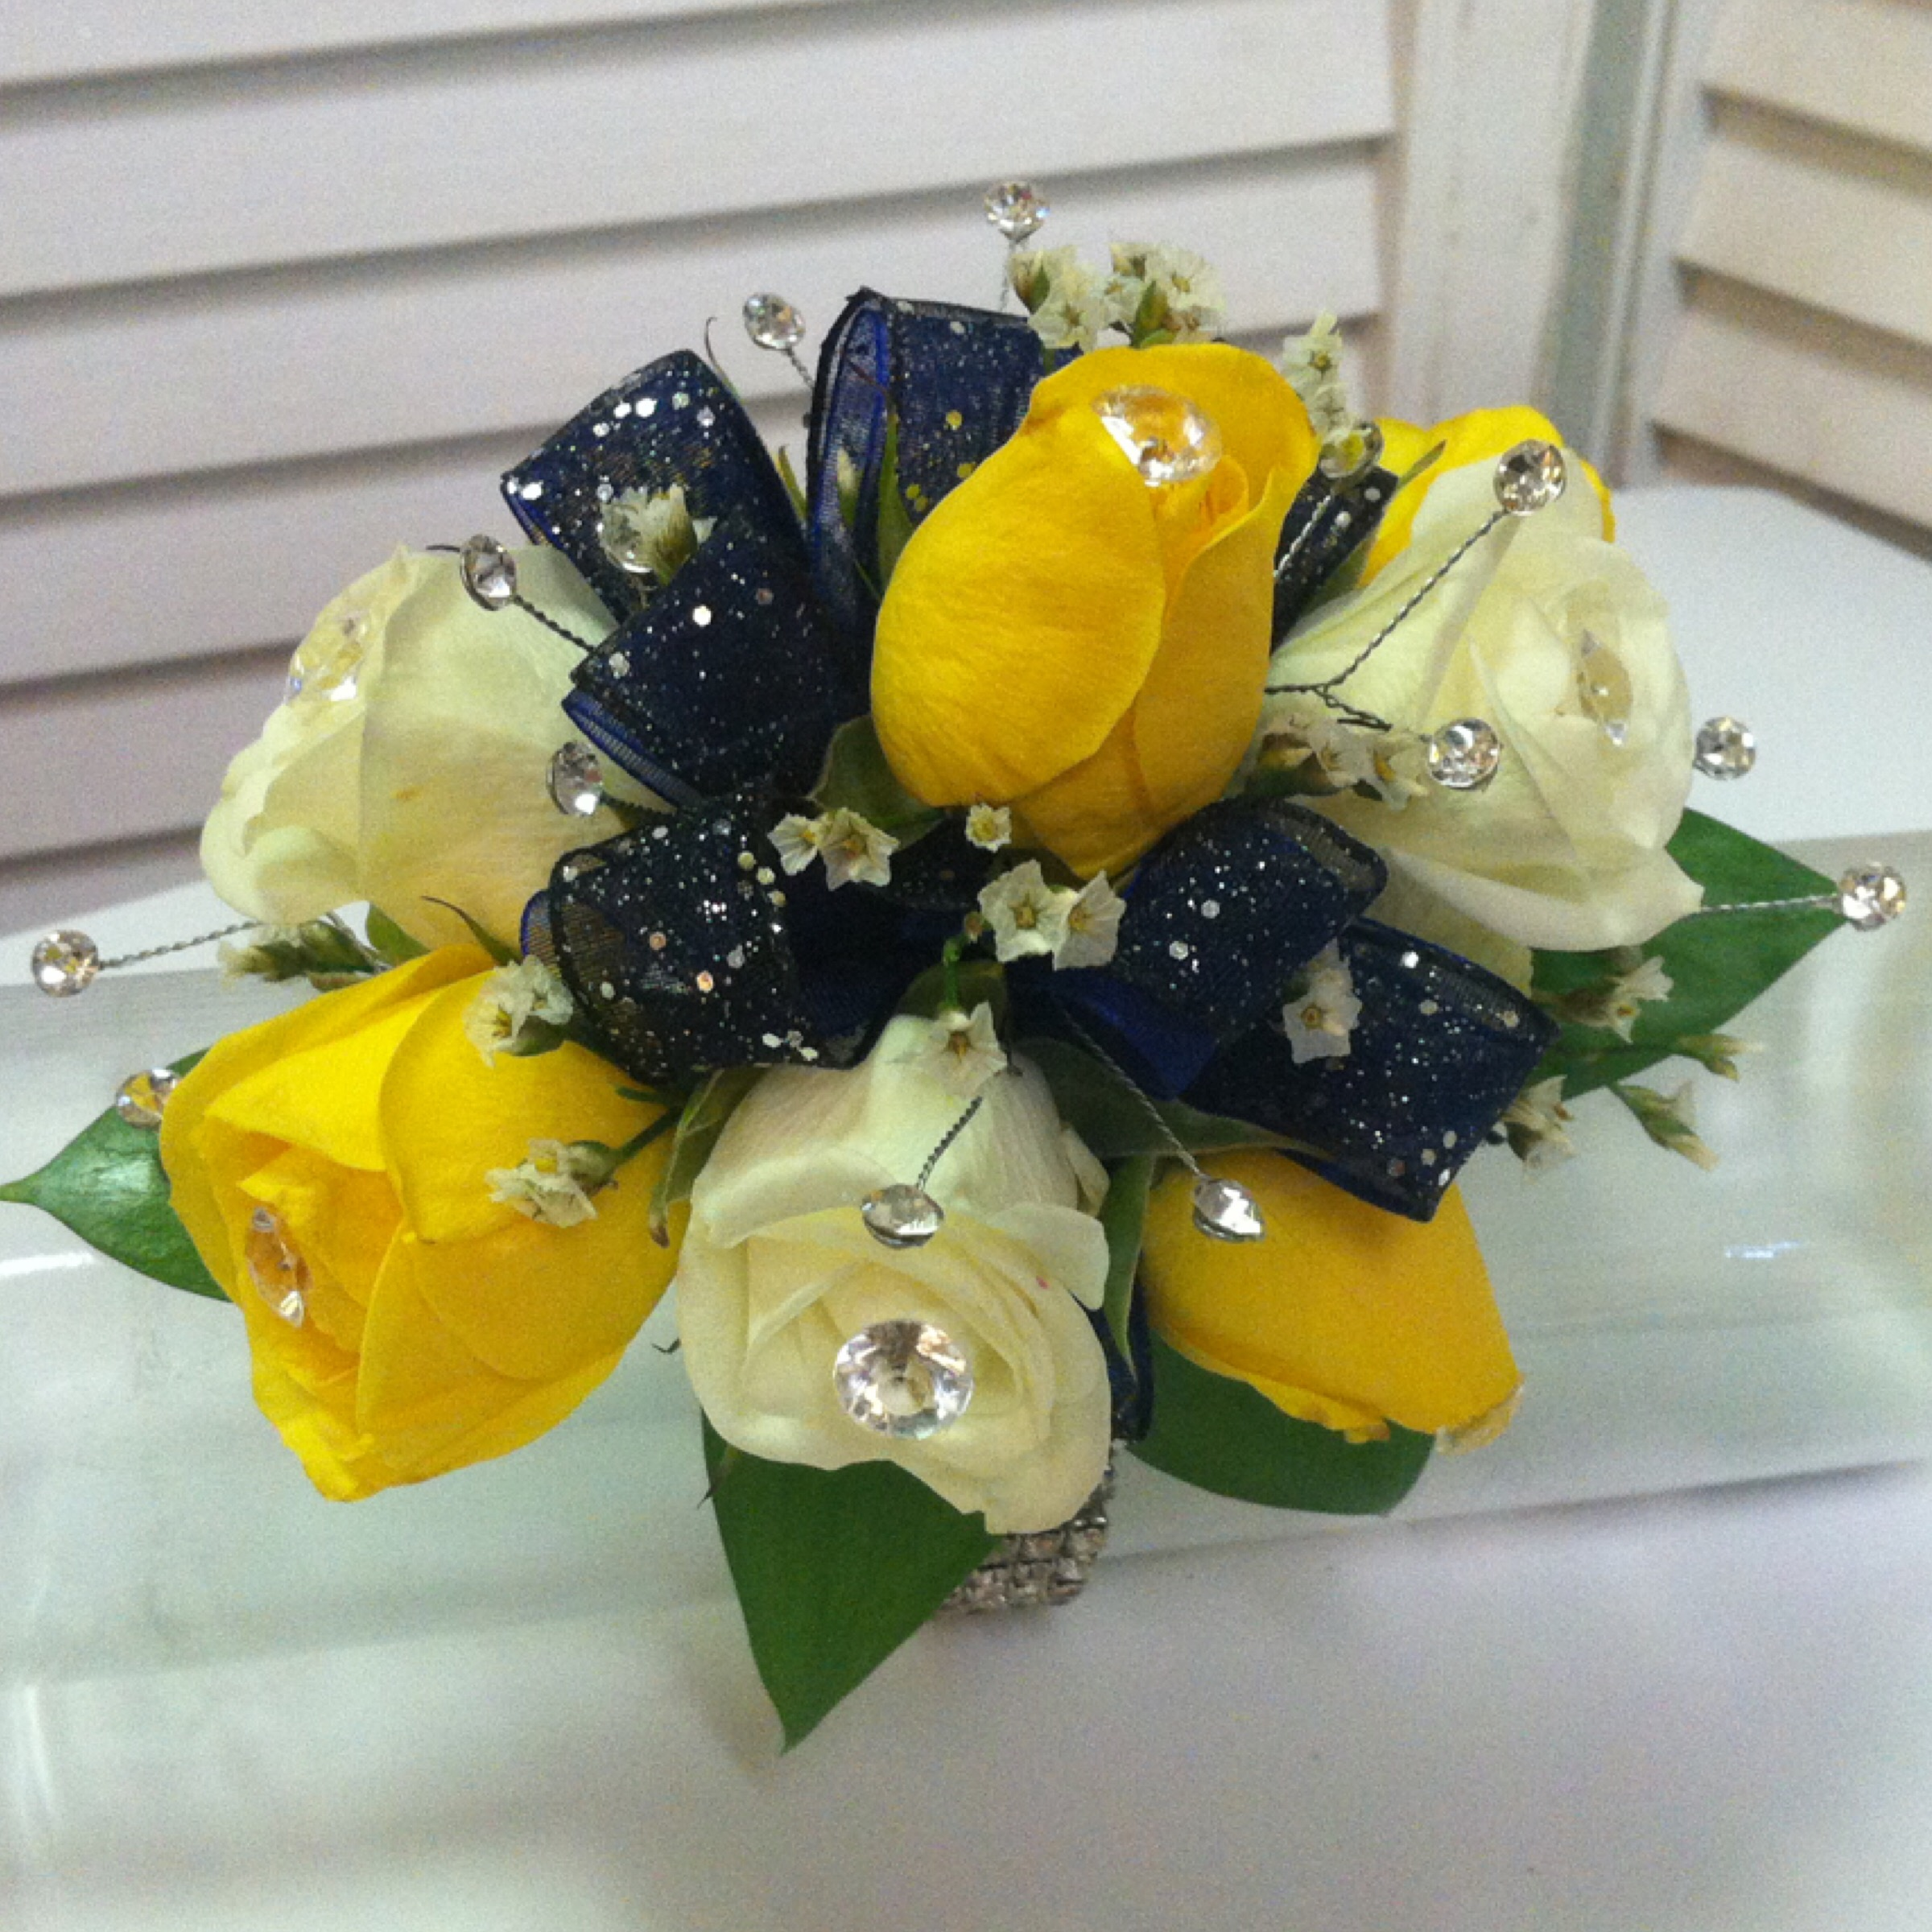 Plus Corsage (30) with Extra Jewels (5), Extra Flowers (5), Deluxe Bracelet (7) $47